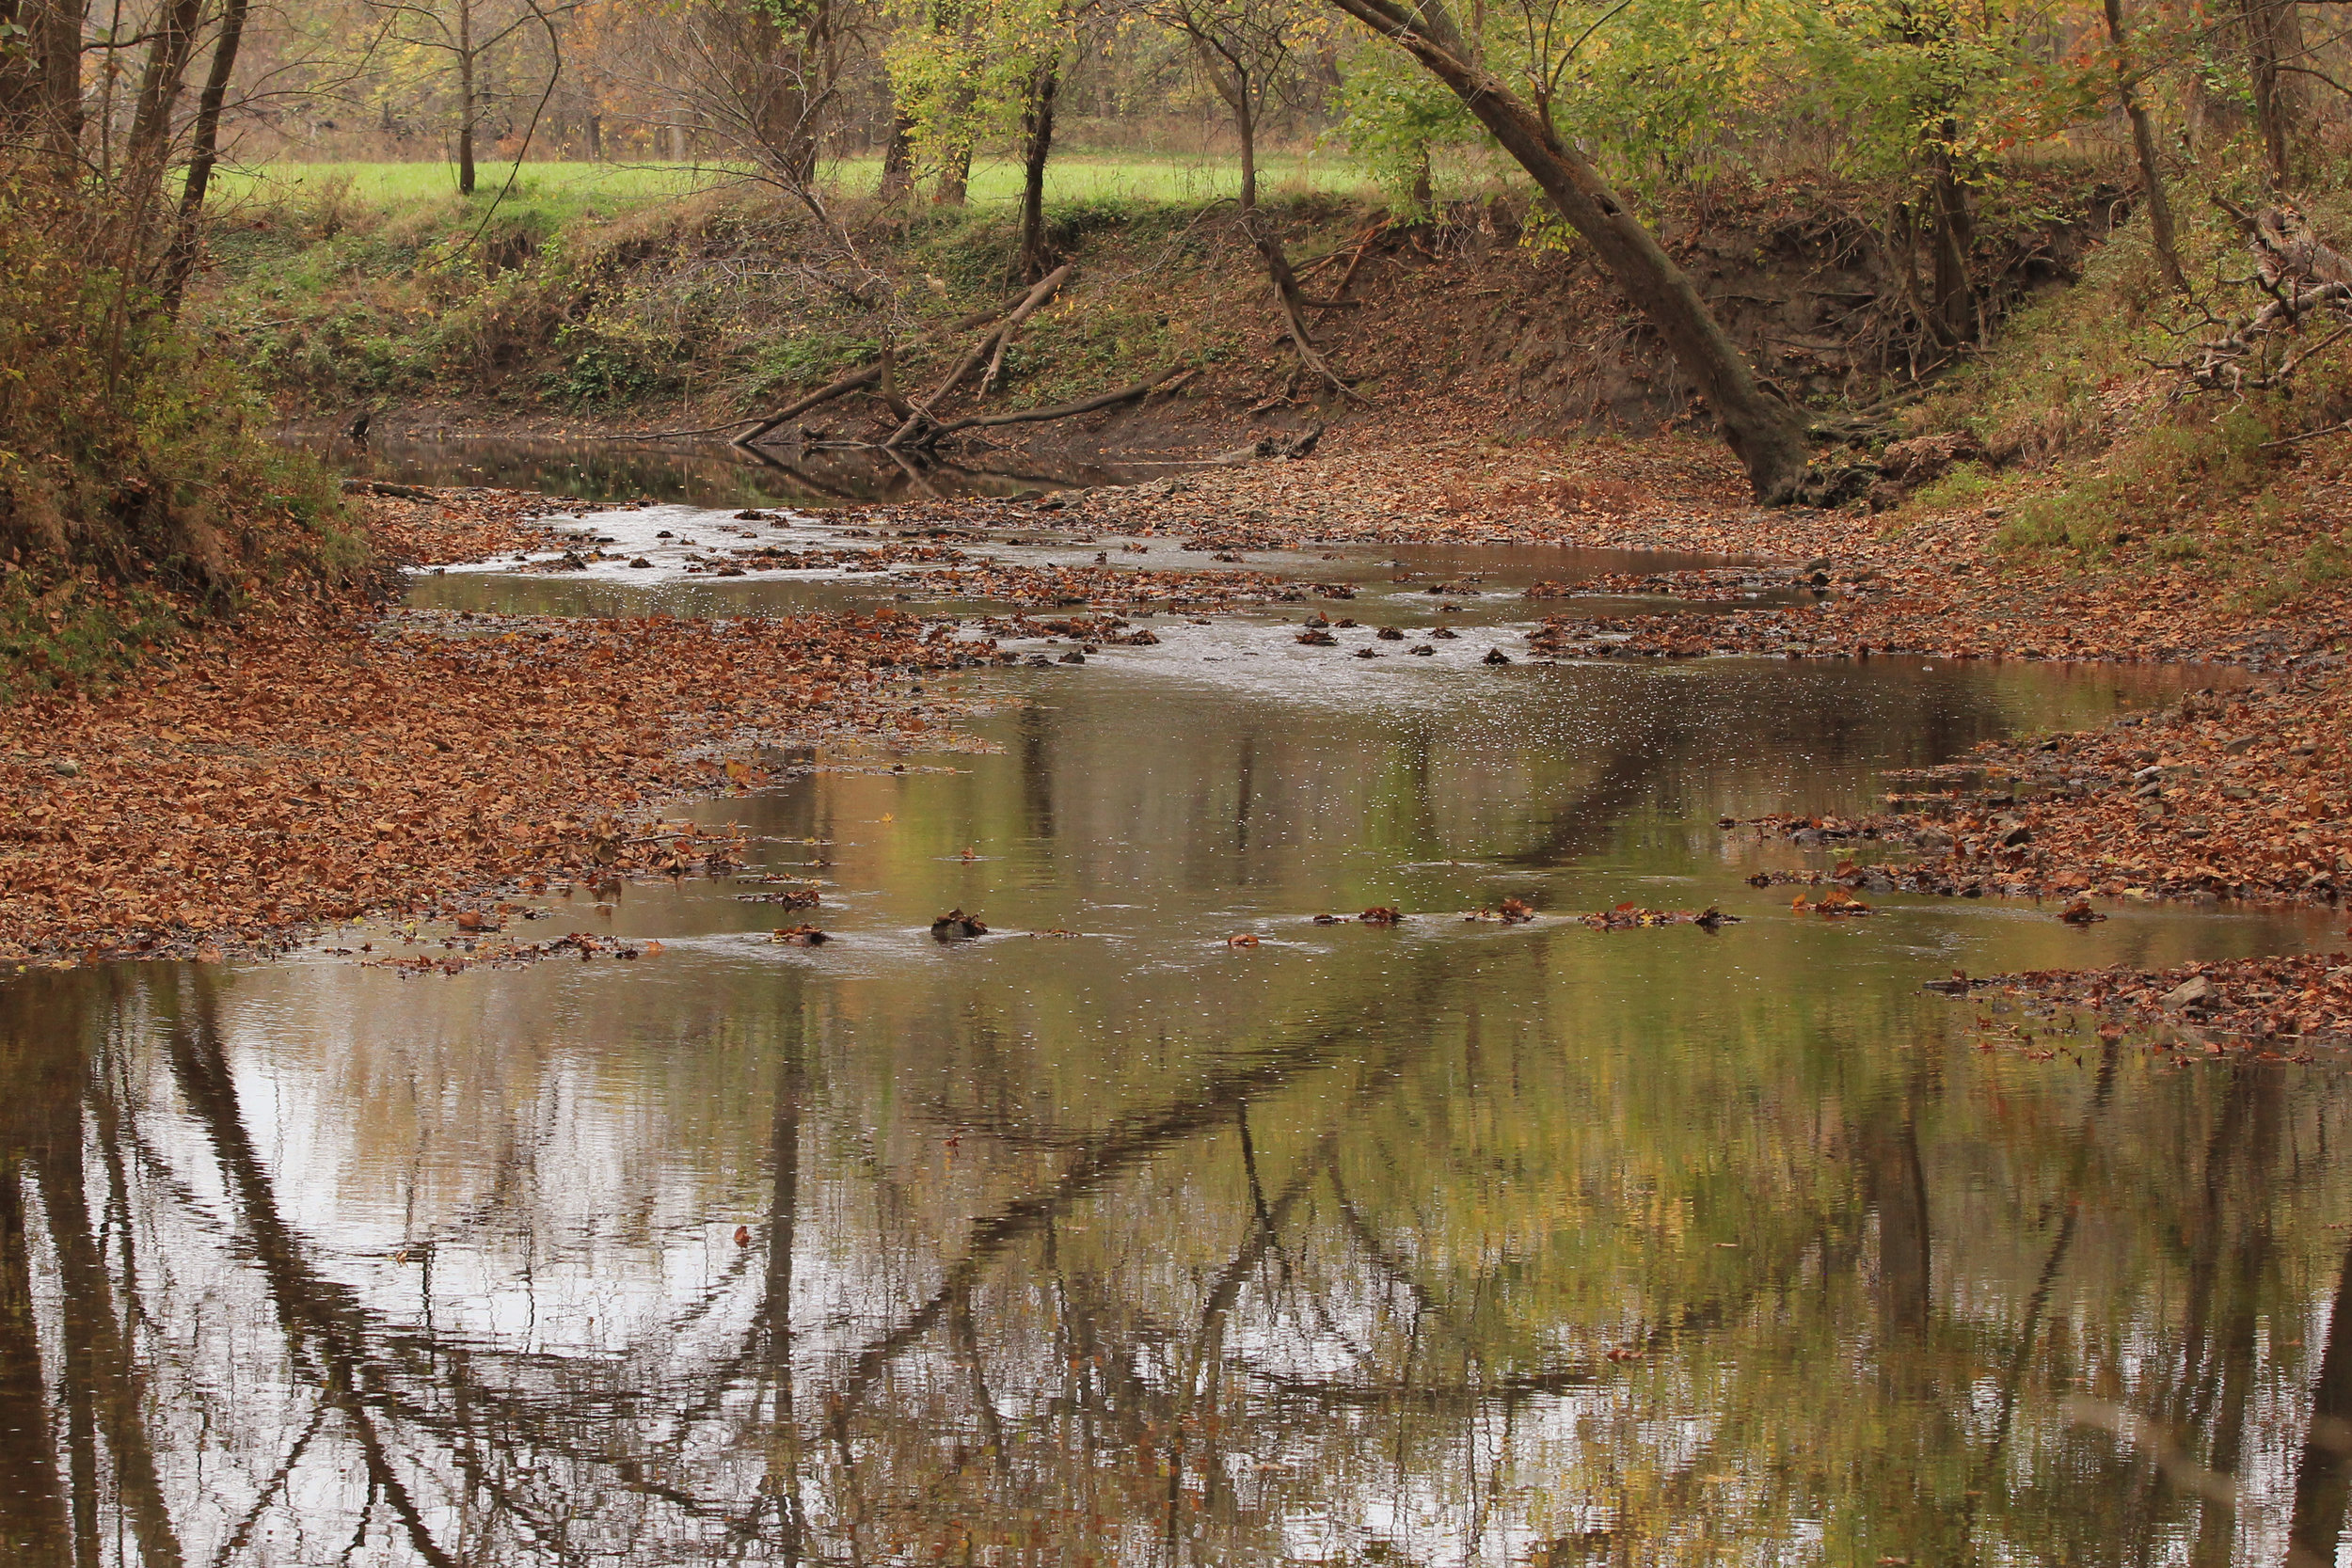 A section of the Blue River running through the Kansas Land Trust's Stueck conservation easement in southern Johnson County.